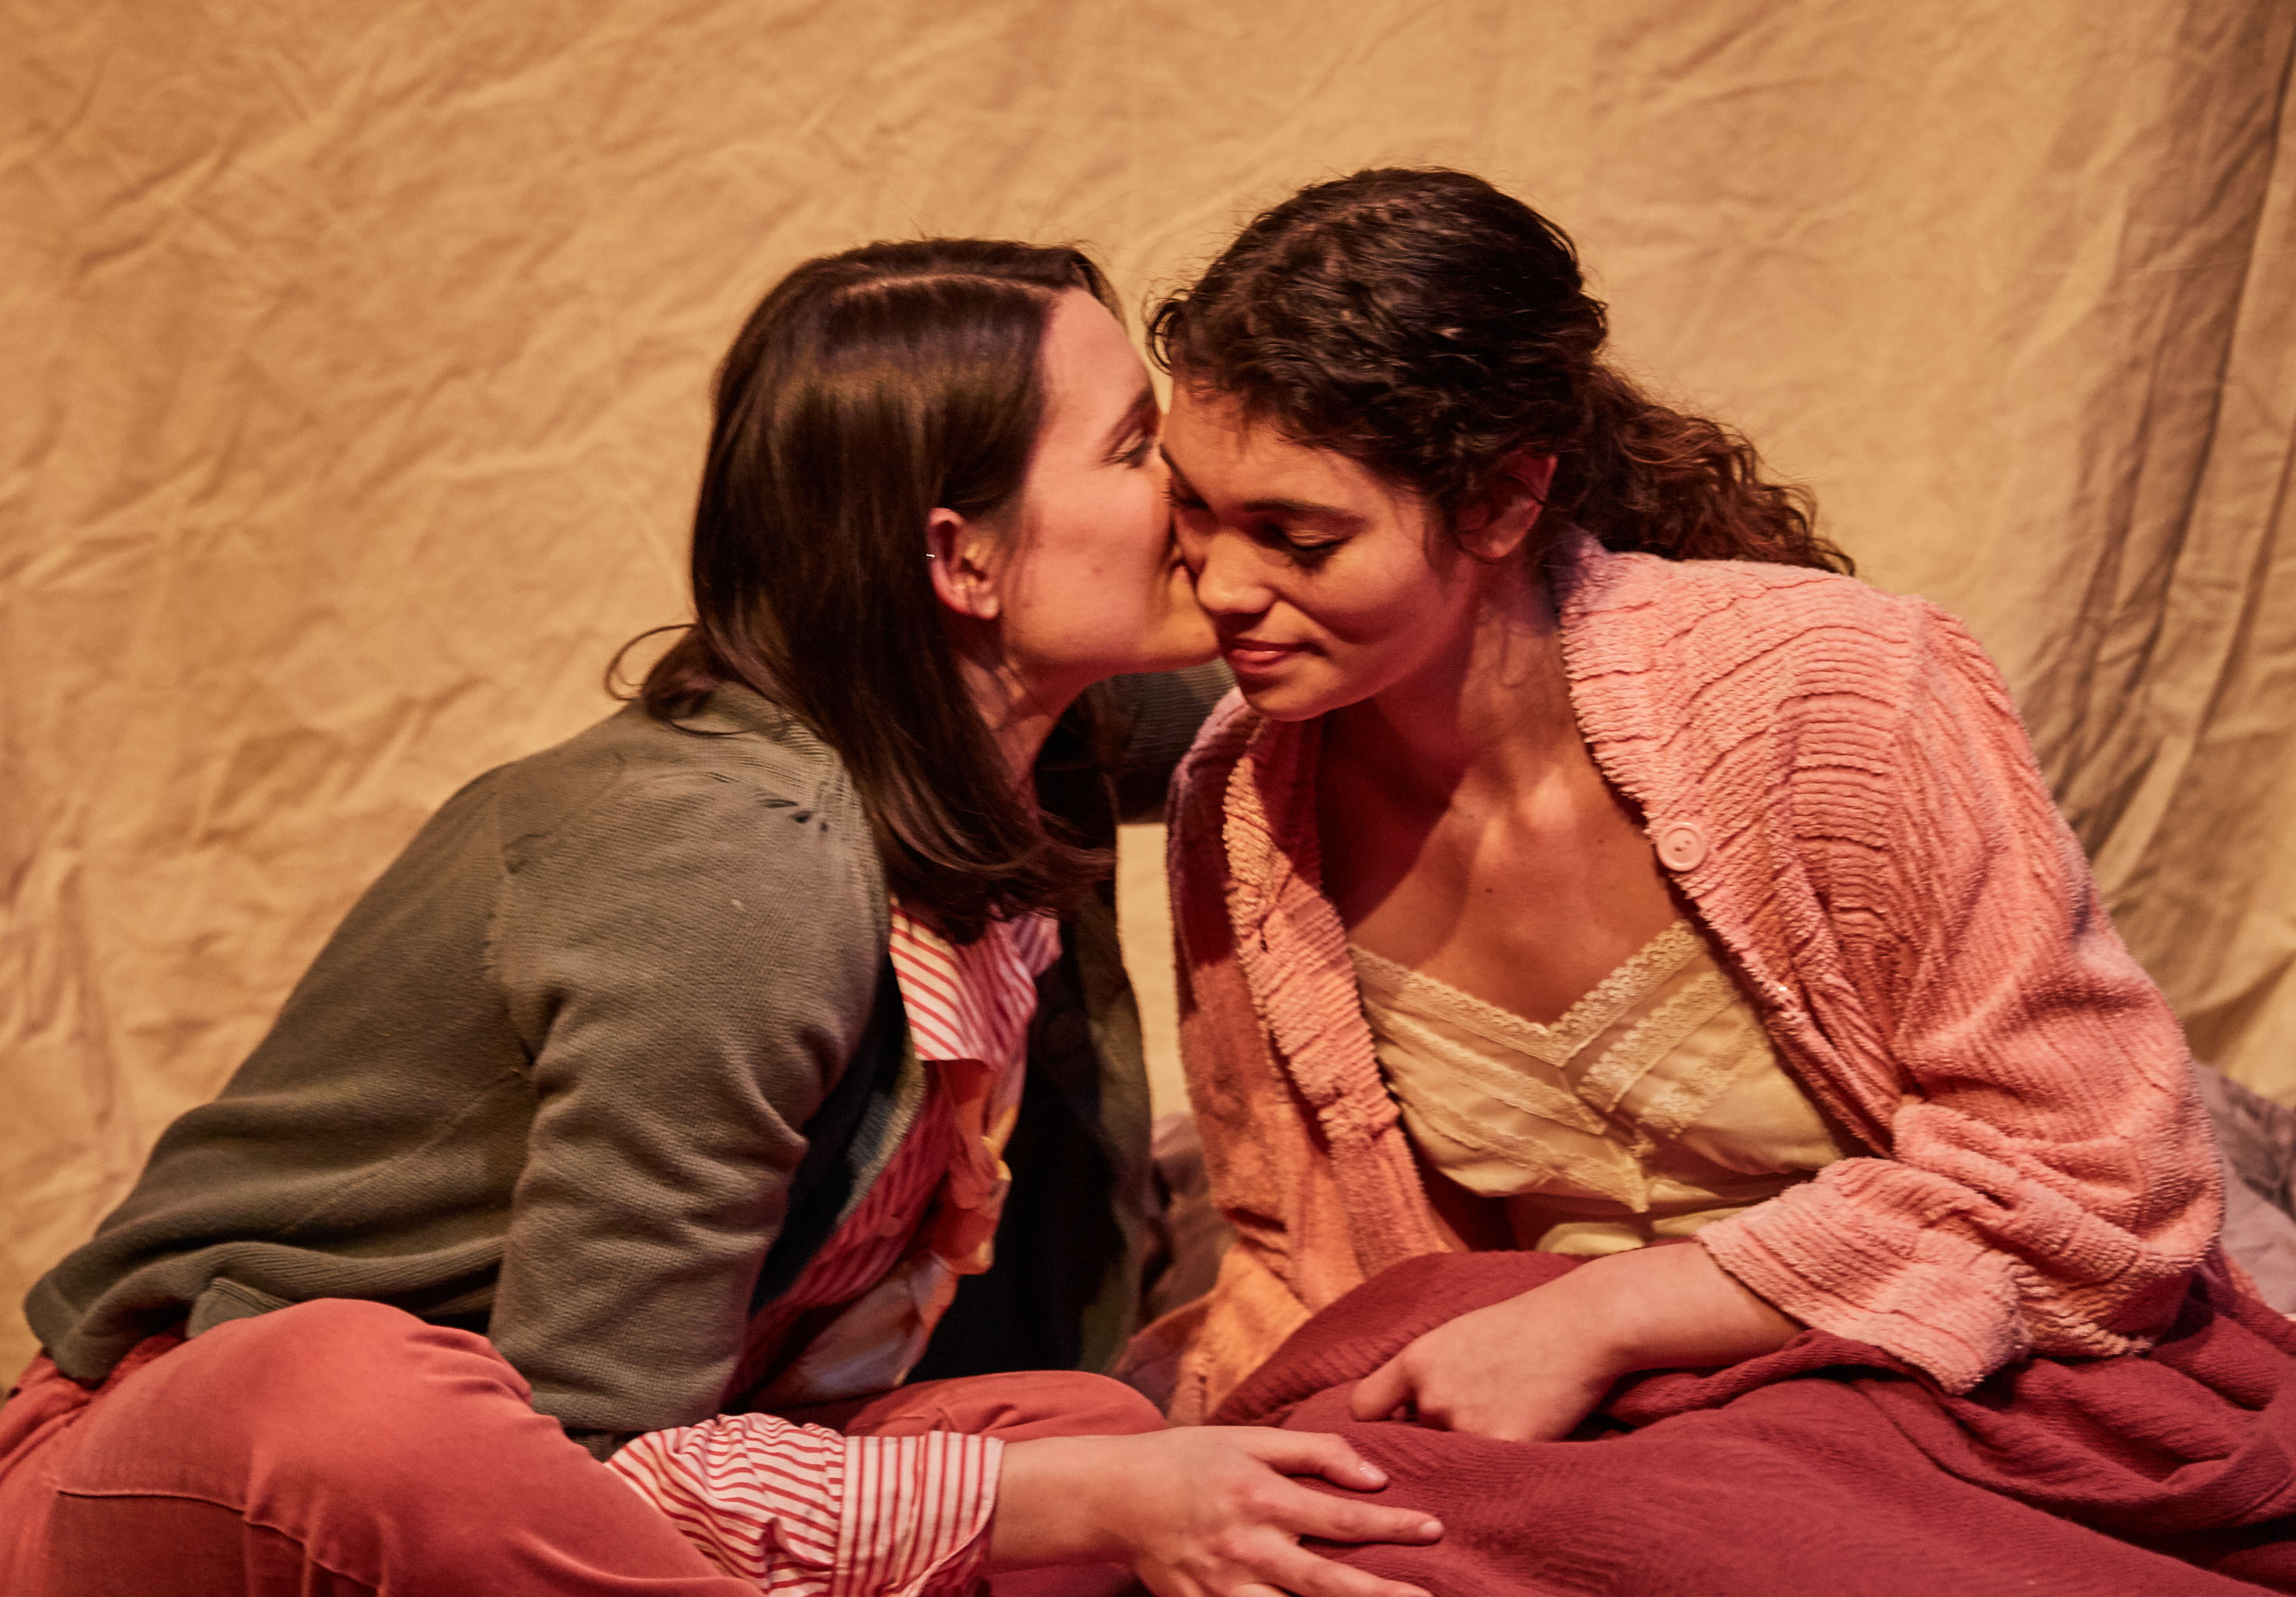 (from left) Kathryn Acosta plays Rainbow and Allyce Torres is Greta in Cuban-American writer María Irene Fornés's Pulitzer-Prize nominated play What of the Night? Chicago's Cor Theater and Stage Left Theatre co-present, and Carlos Murillo directs, Fornés's epic, deeply intimate and never-more-timely mediation about poverty in America, now through February 12, 2017 at Theater Wit, 1229 W. Belmont Ave., Chicago. Tickets and information: cortheatre.org, stagelefttheatre.com or (773) 975-8150. Photo credit: Ian McLaren